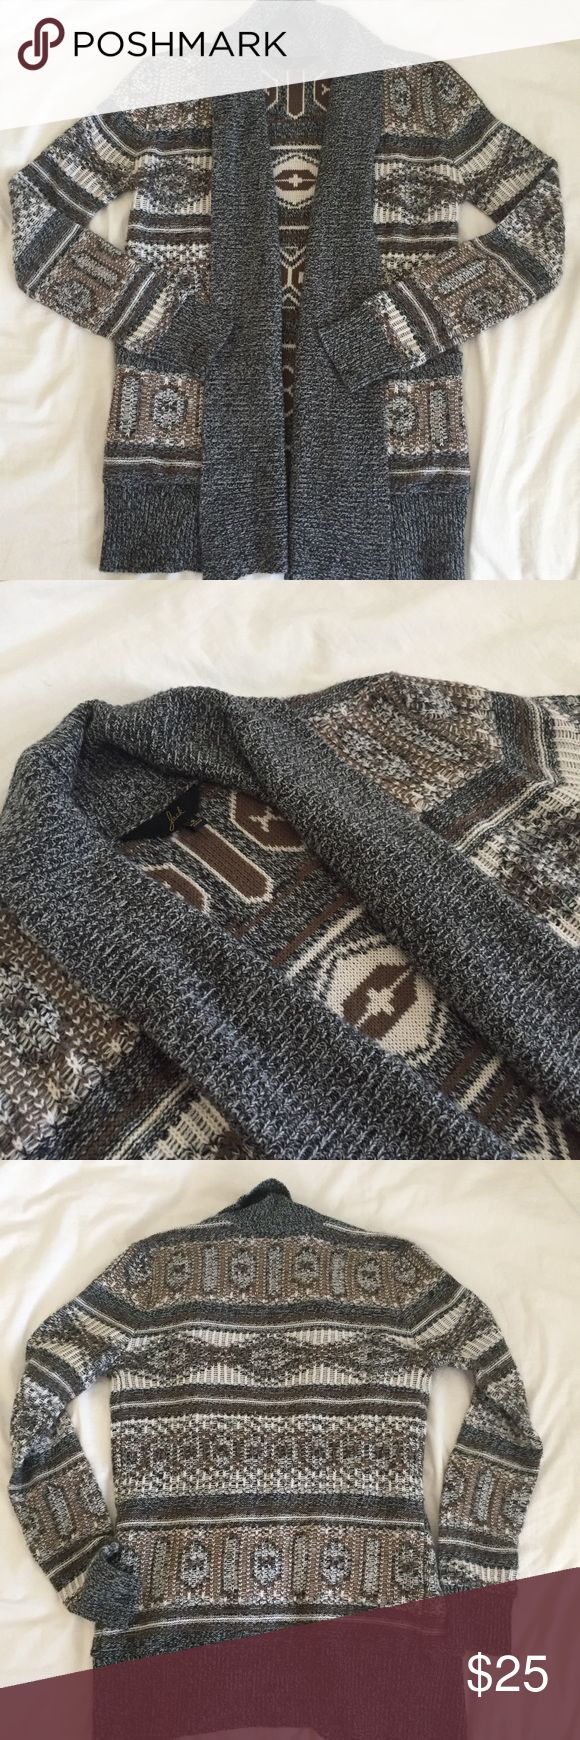 Jack open cardigan tribal geometric print GUC. No flaws noted. Size S . Lightweight open cardigan . Perfect for cool spring nights. Jack by BB Dakota Sweaters Cardigans